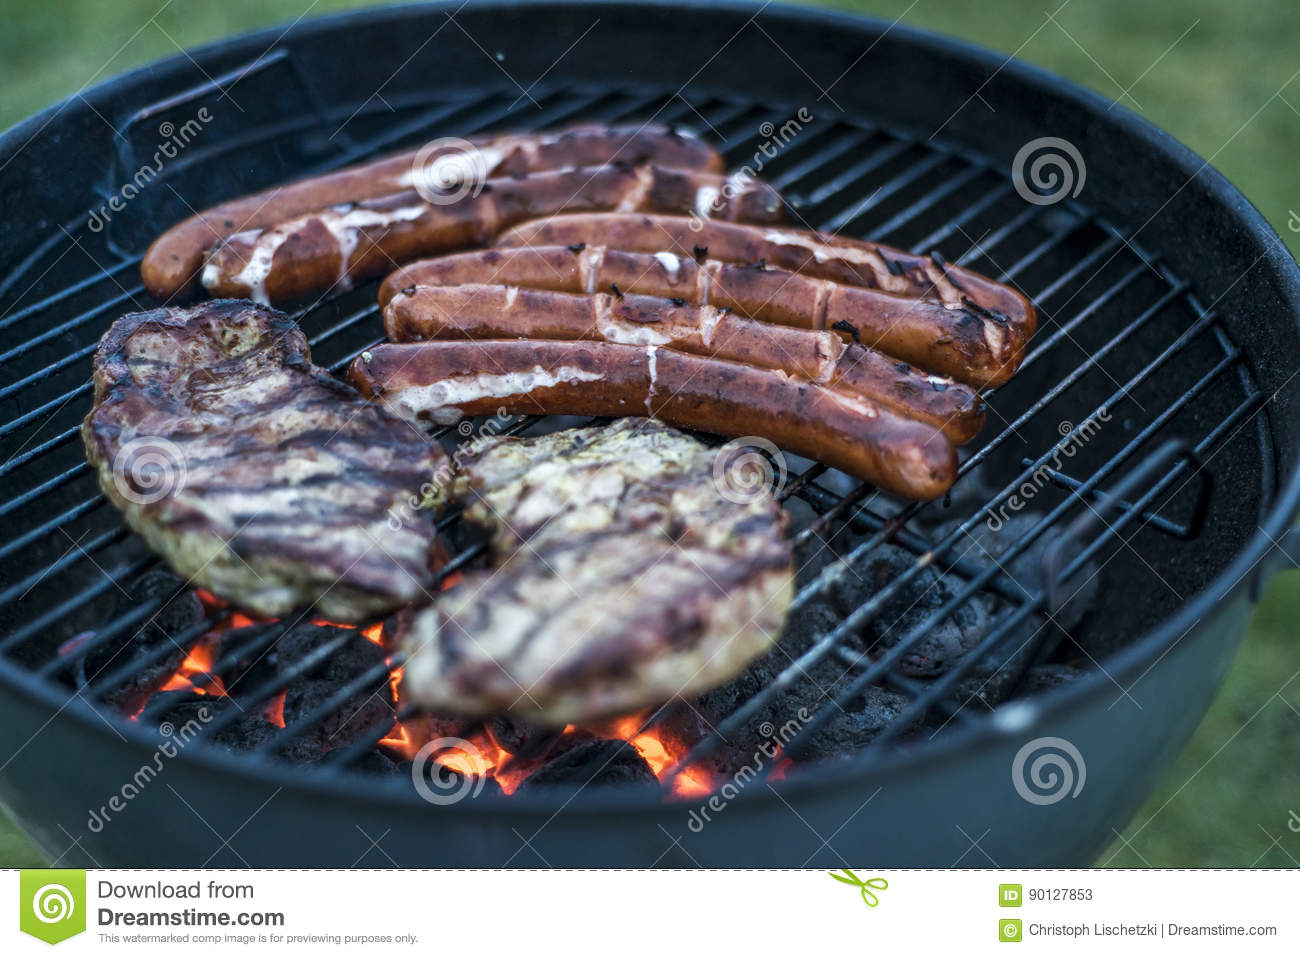 Coal Bbq Delicious Grilled Meat Over Coal On Barbecue Grill Bbq Stock Image